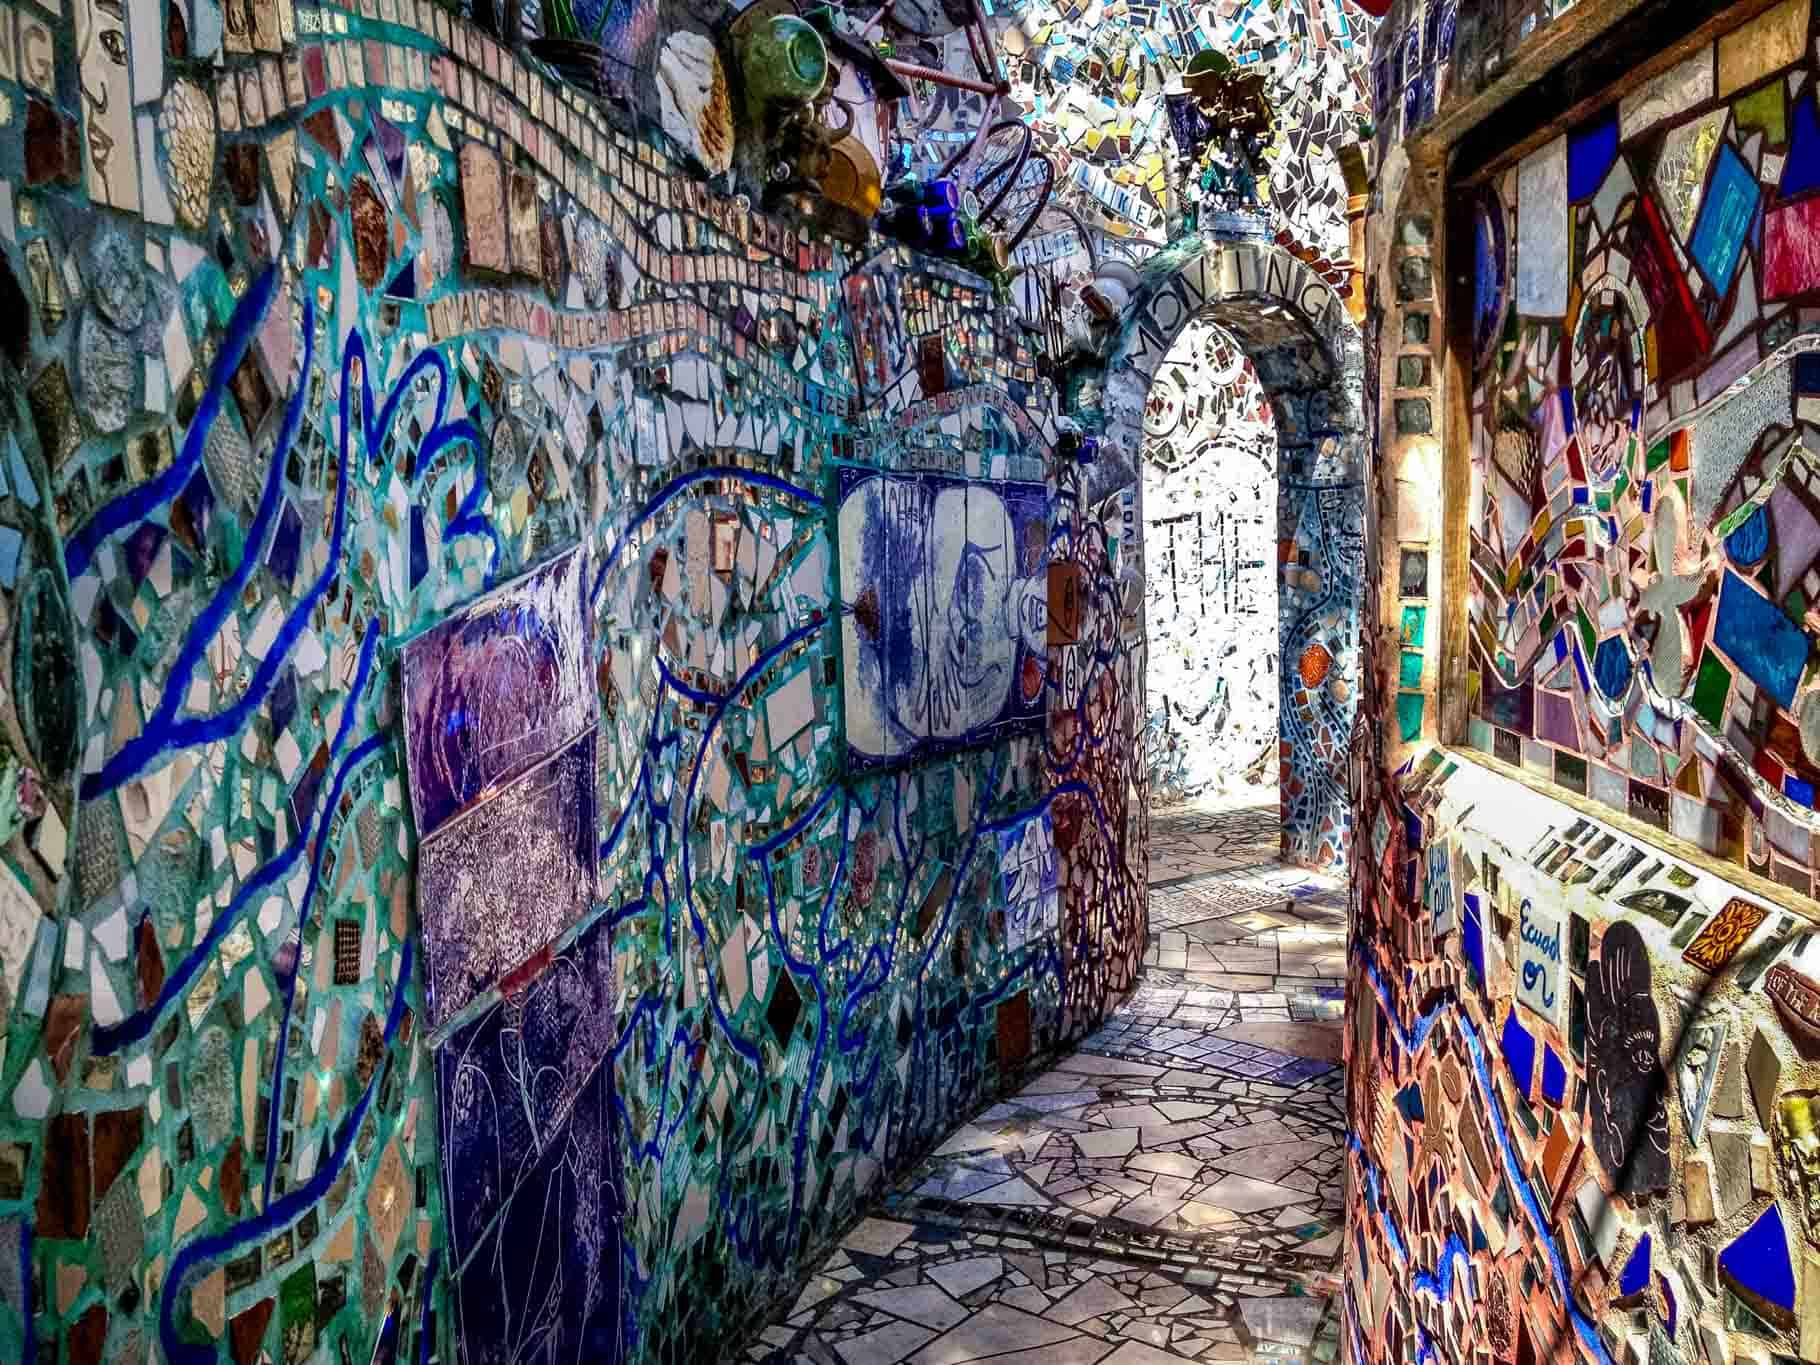 Passageway covered in mosaics